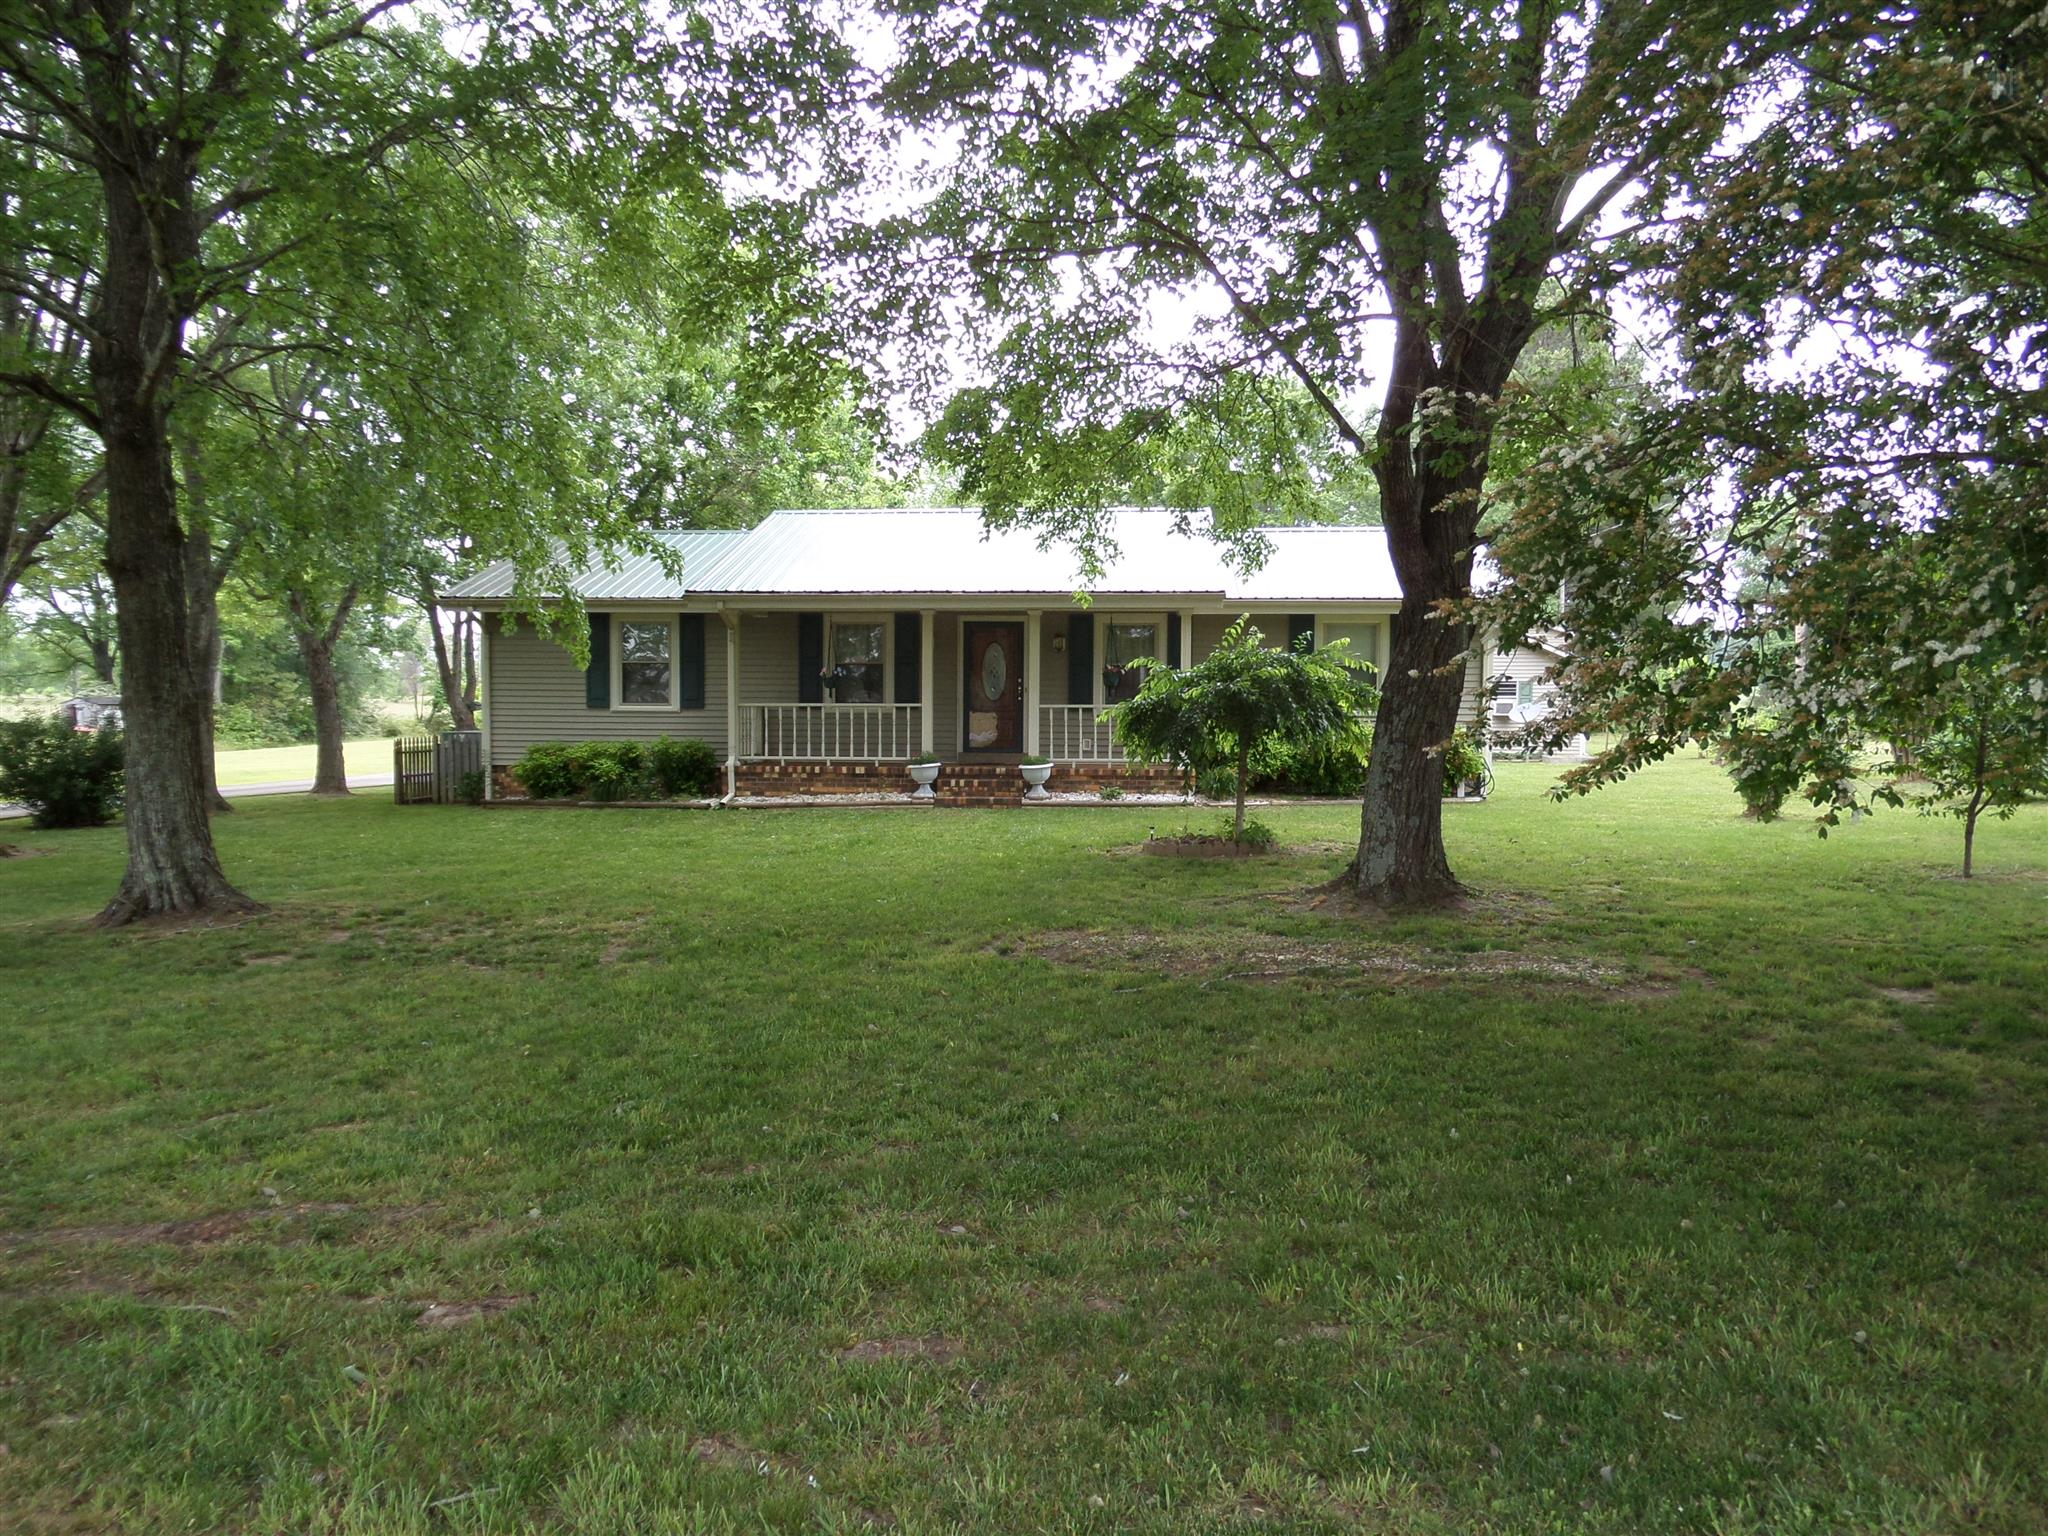 546 Weakley Creek Rd, Lawrenceburg, TN 38464